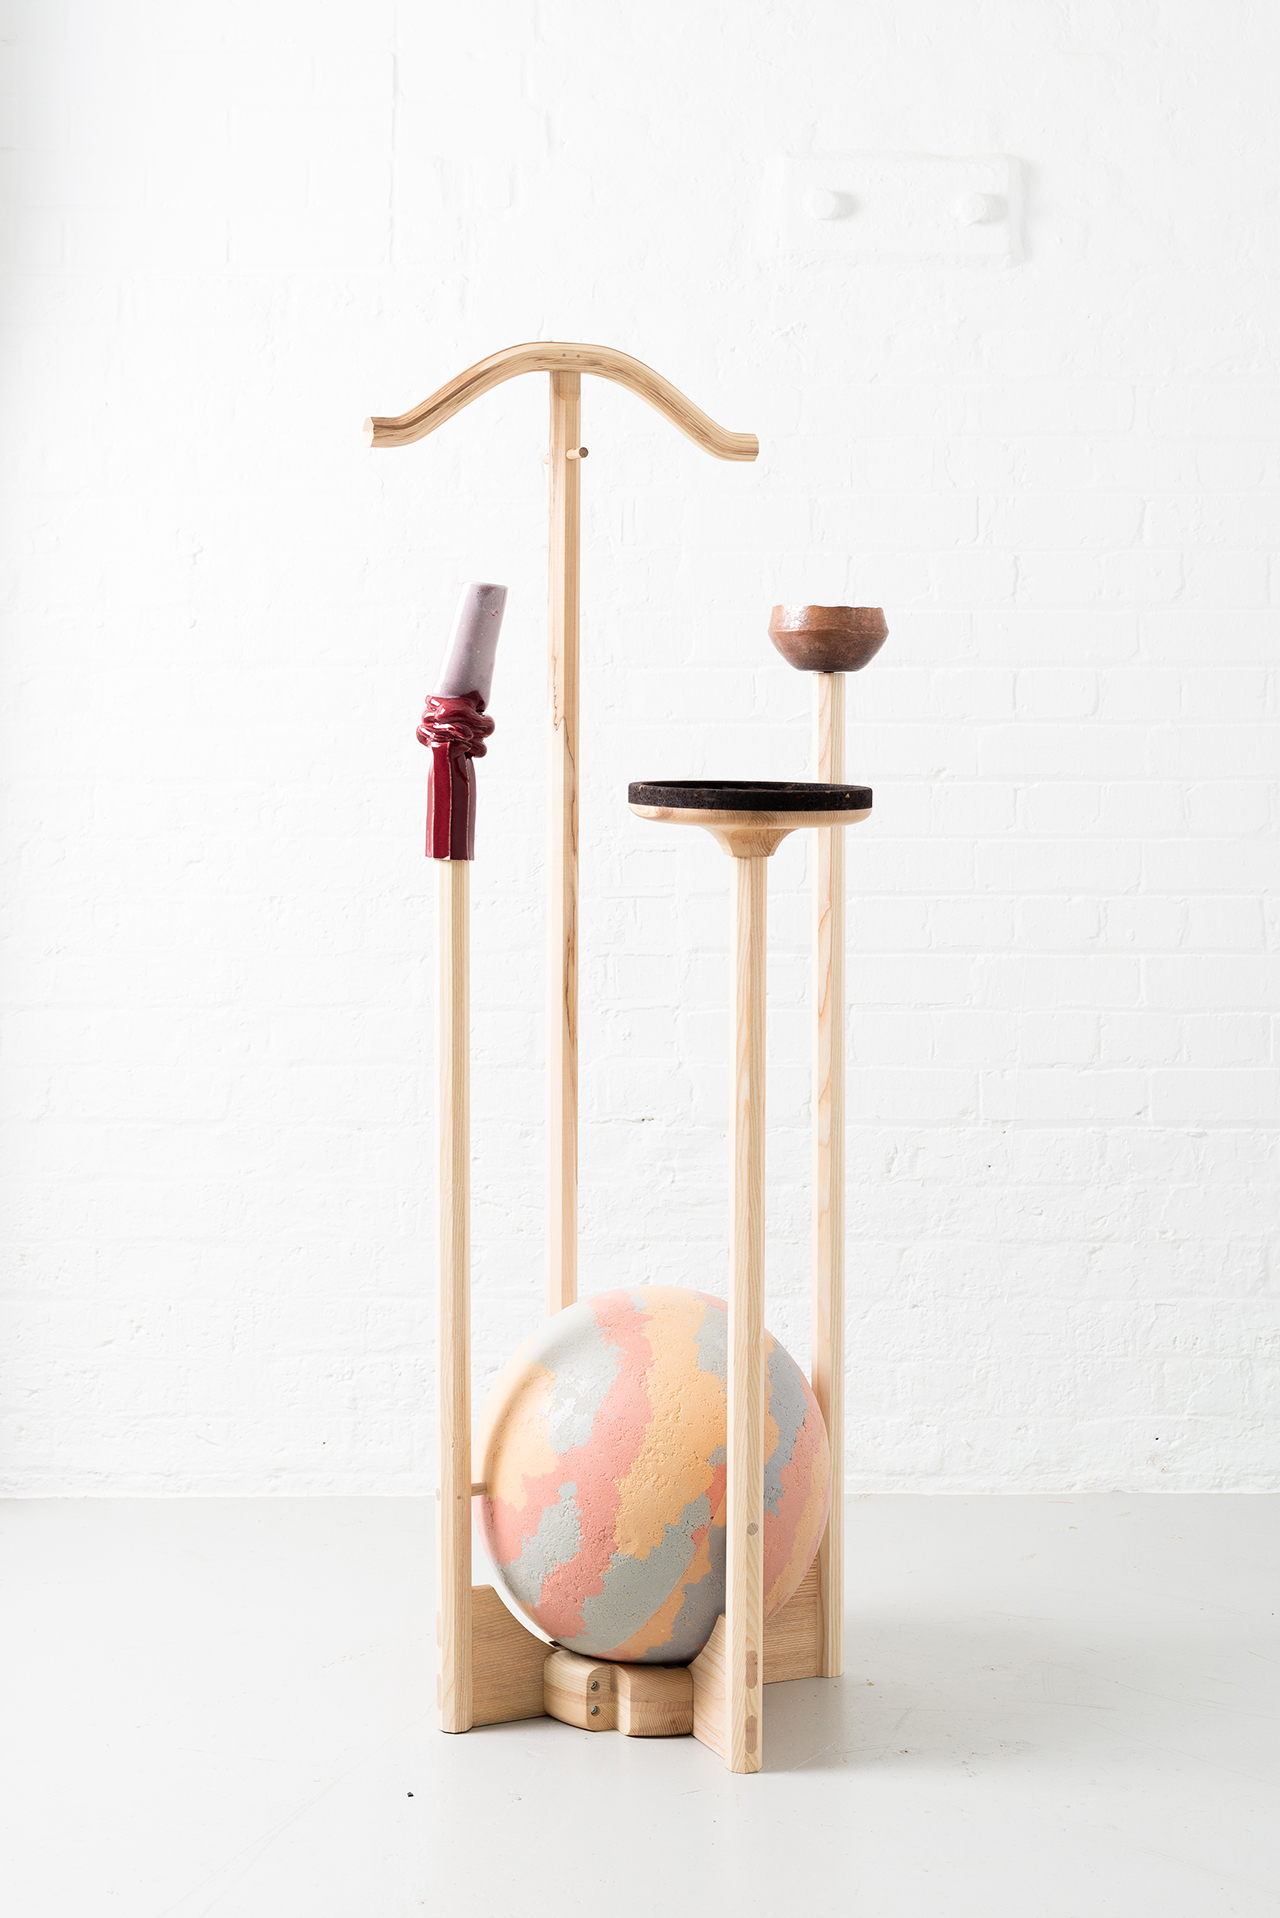 Valet Stand by Jan Hendzel Studio. Photo by Fergus Coyle.